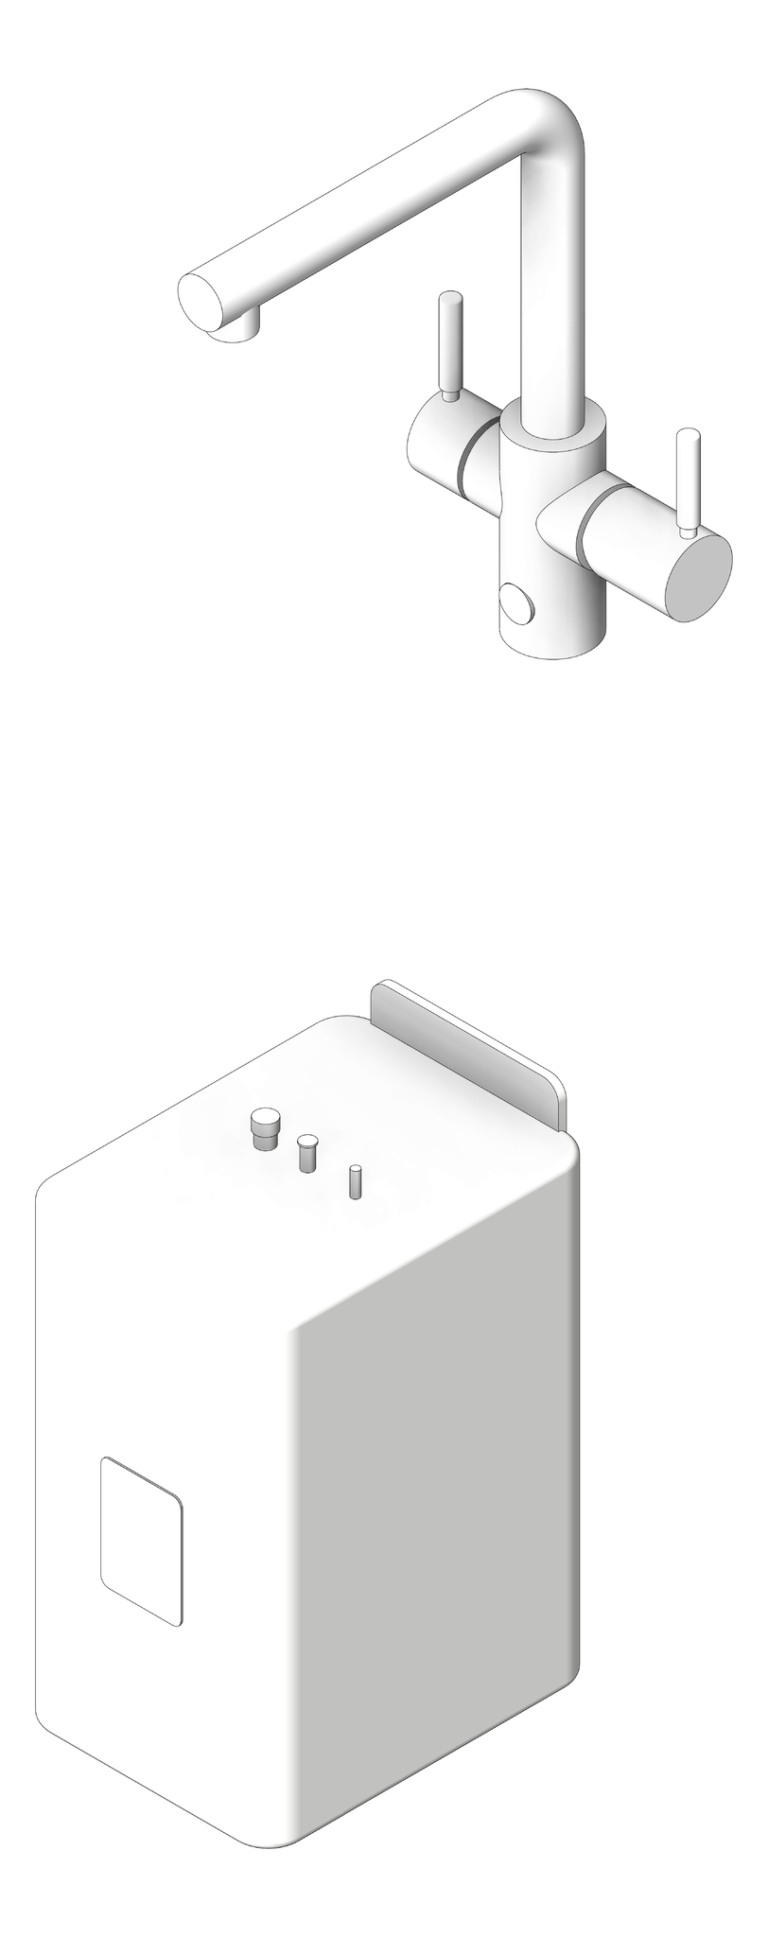 Multitap_Assembled_InSinkErator_4in1Ambient_Lshape_3D Shaded